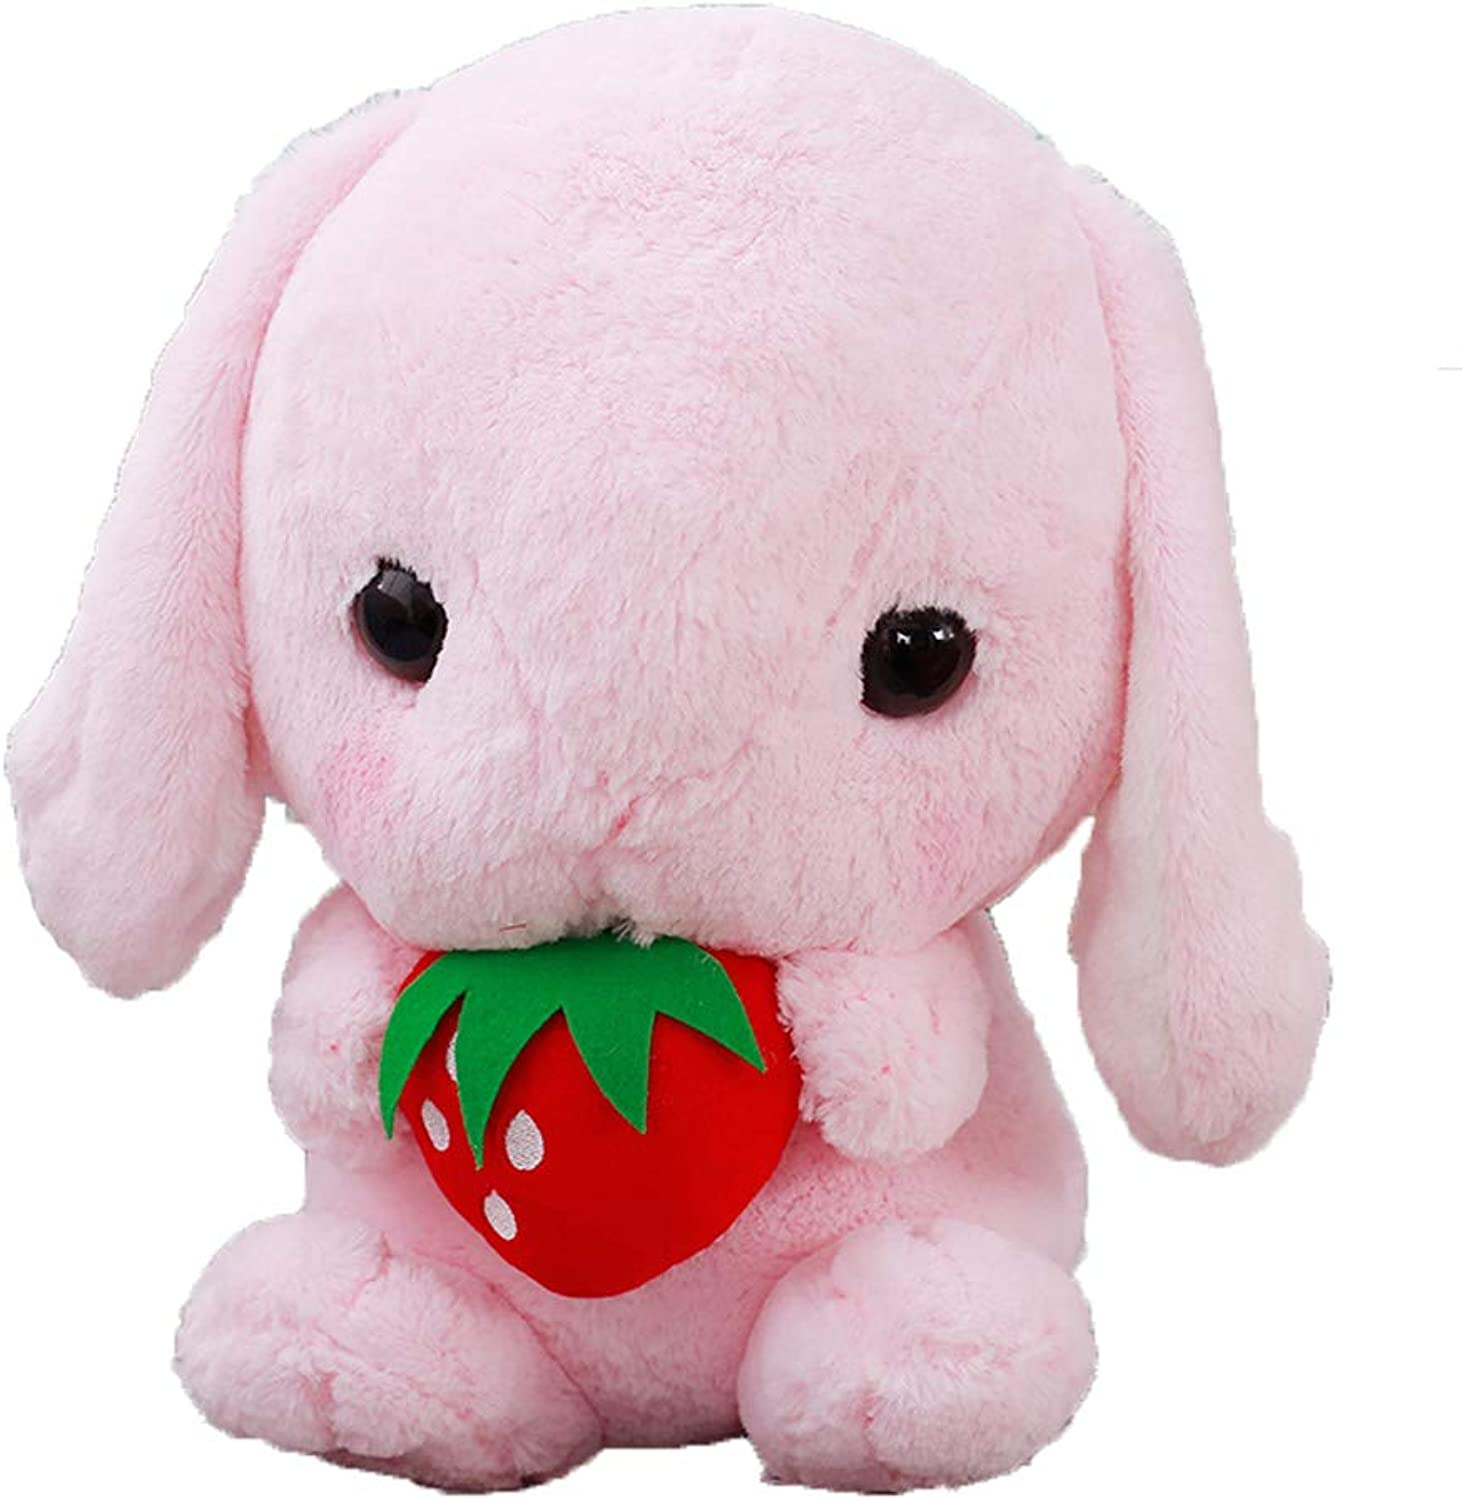 Comfortable Plush Doll, Rabbit Cute Toys and Ornaments Material is Plush Filled with PP Cotton 2080 cm Can be Used as a Gift or Pet Toy